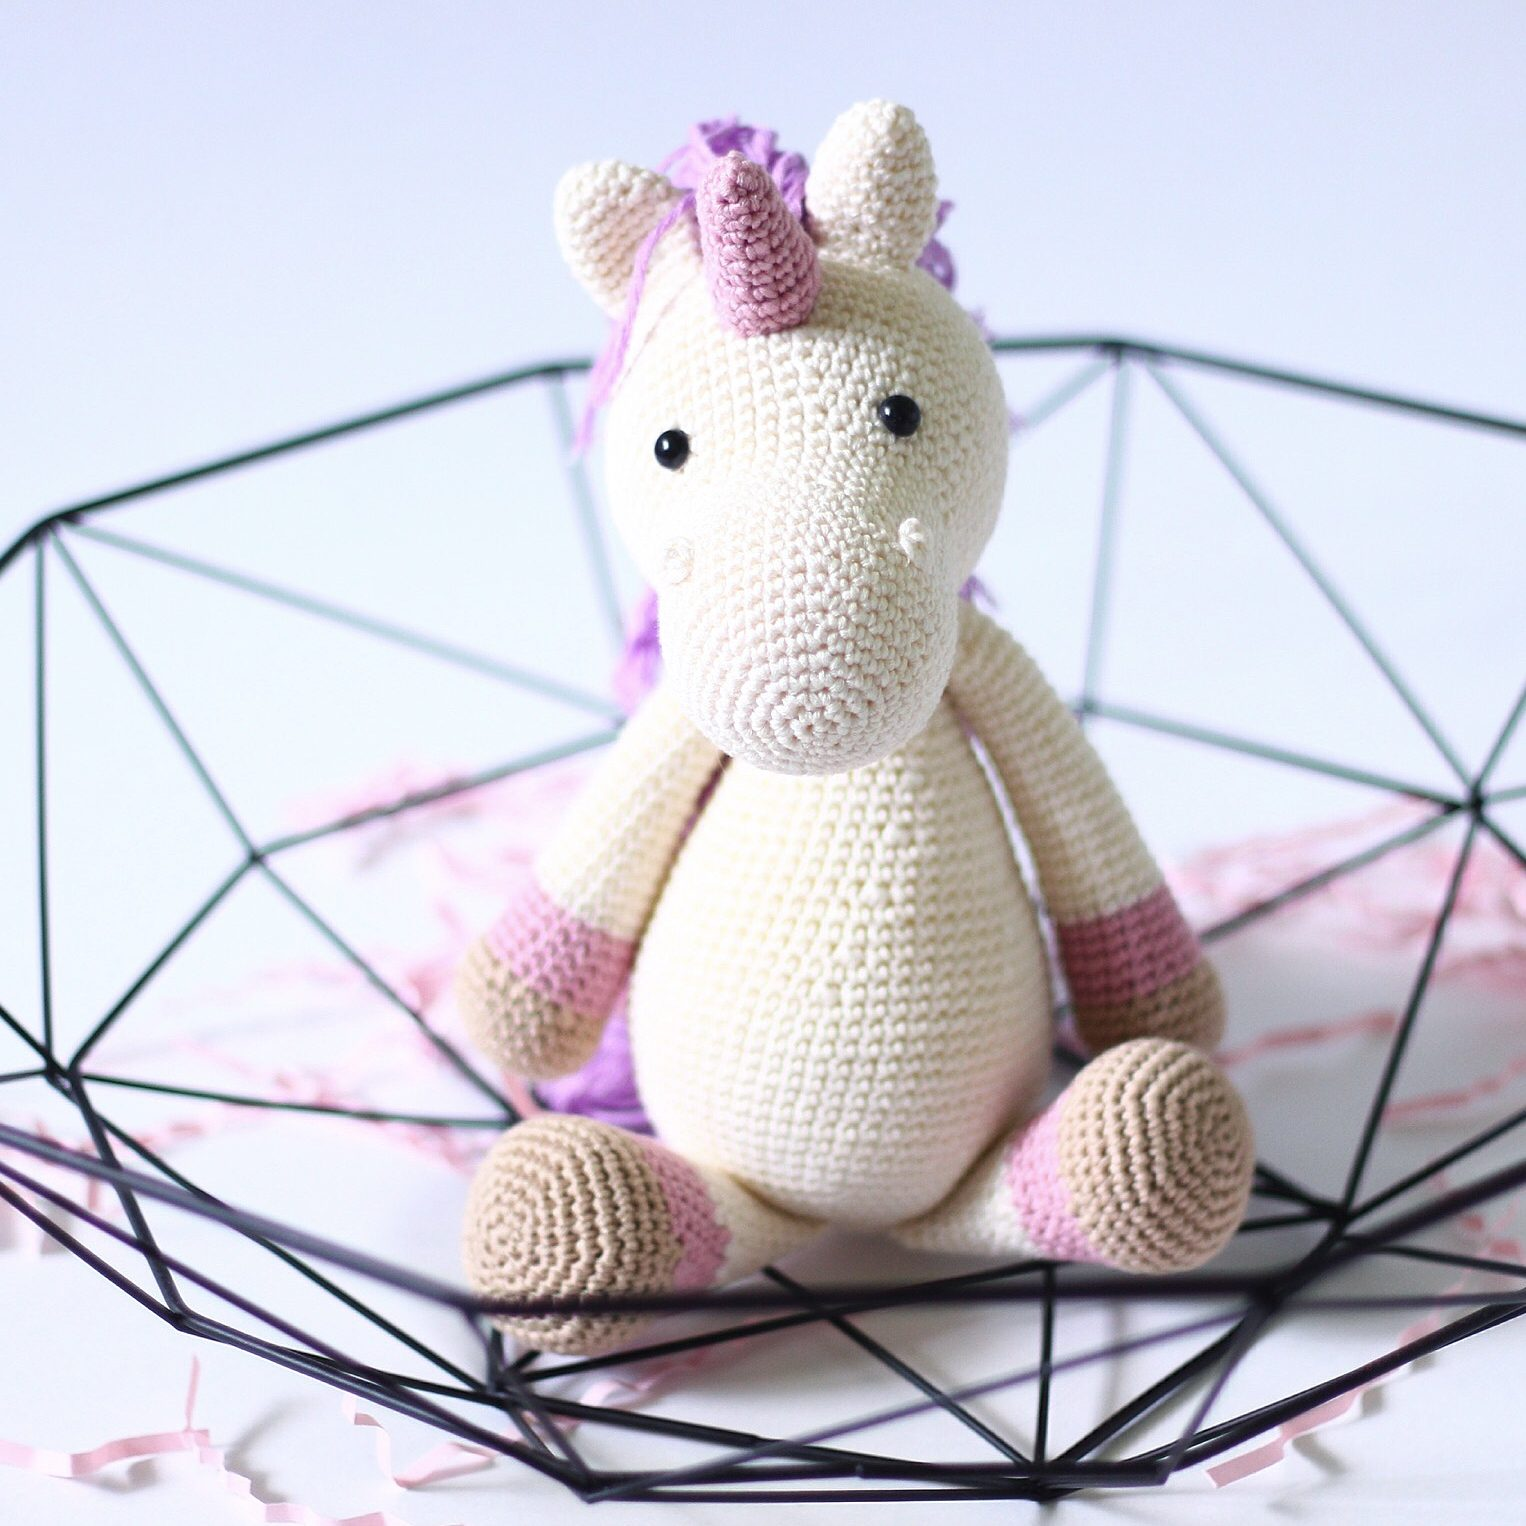 Crocheted cuteness by @ikkvistore